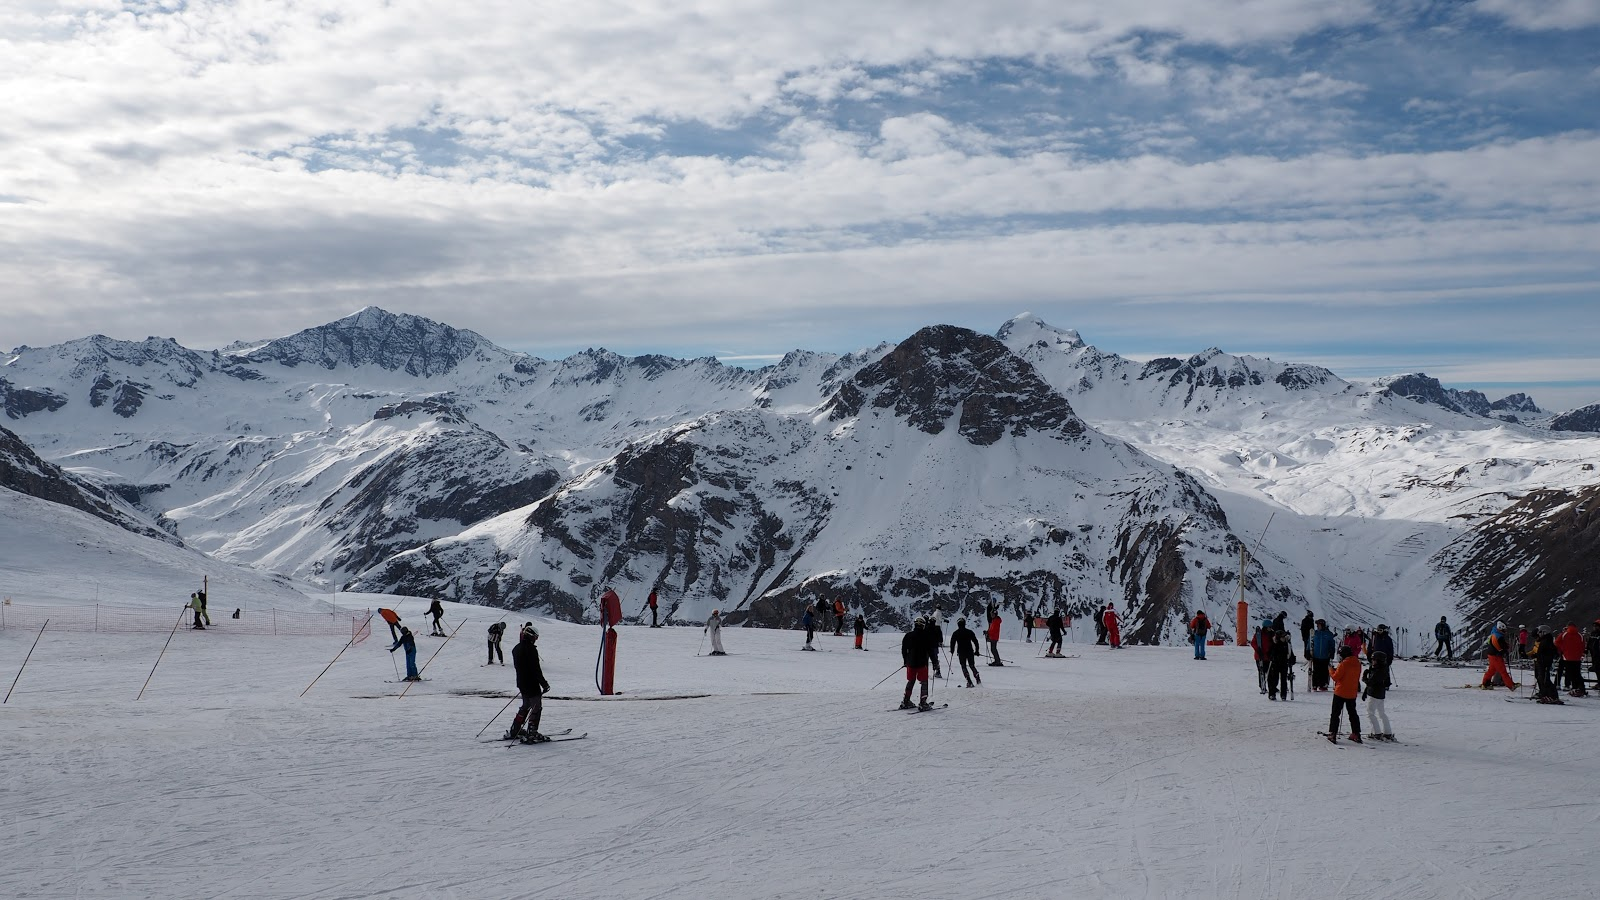 skiing on top of a snowy mountain in Val d'isere, France